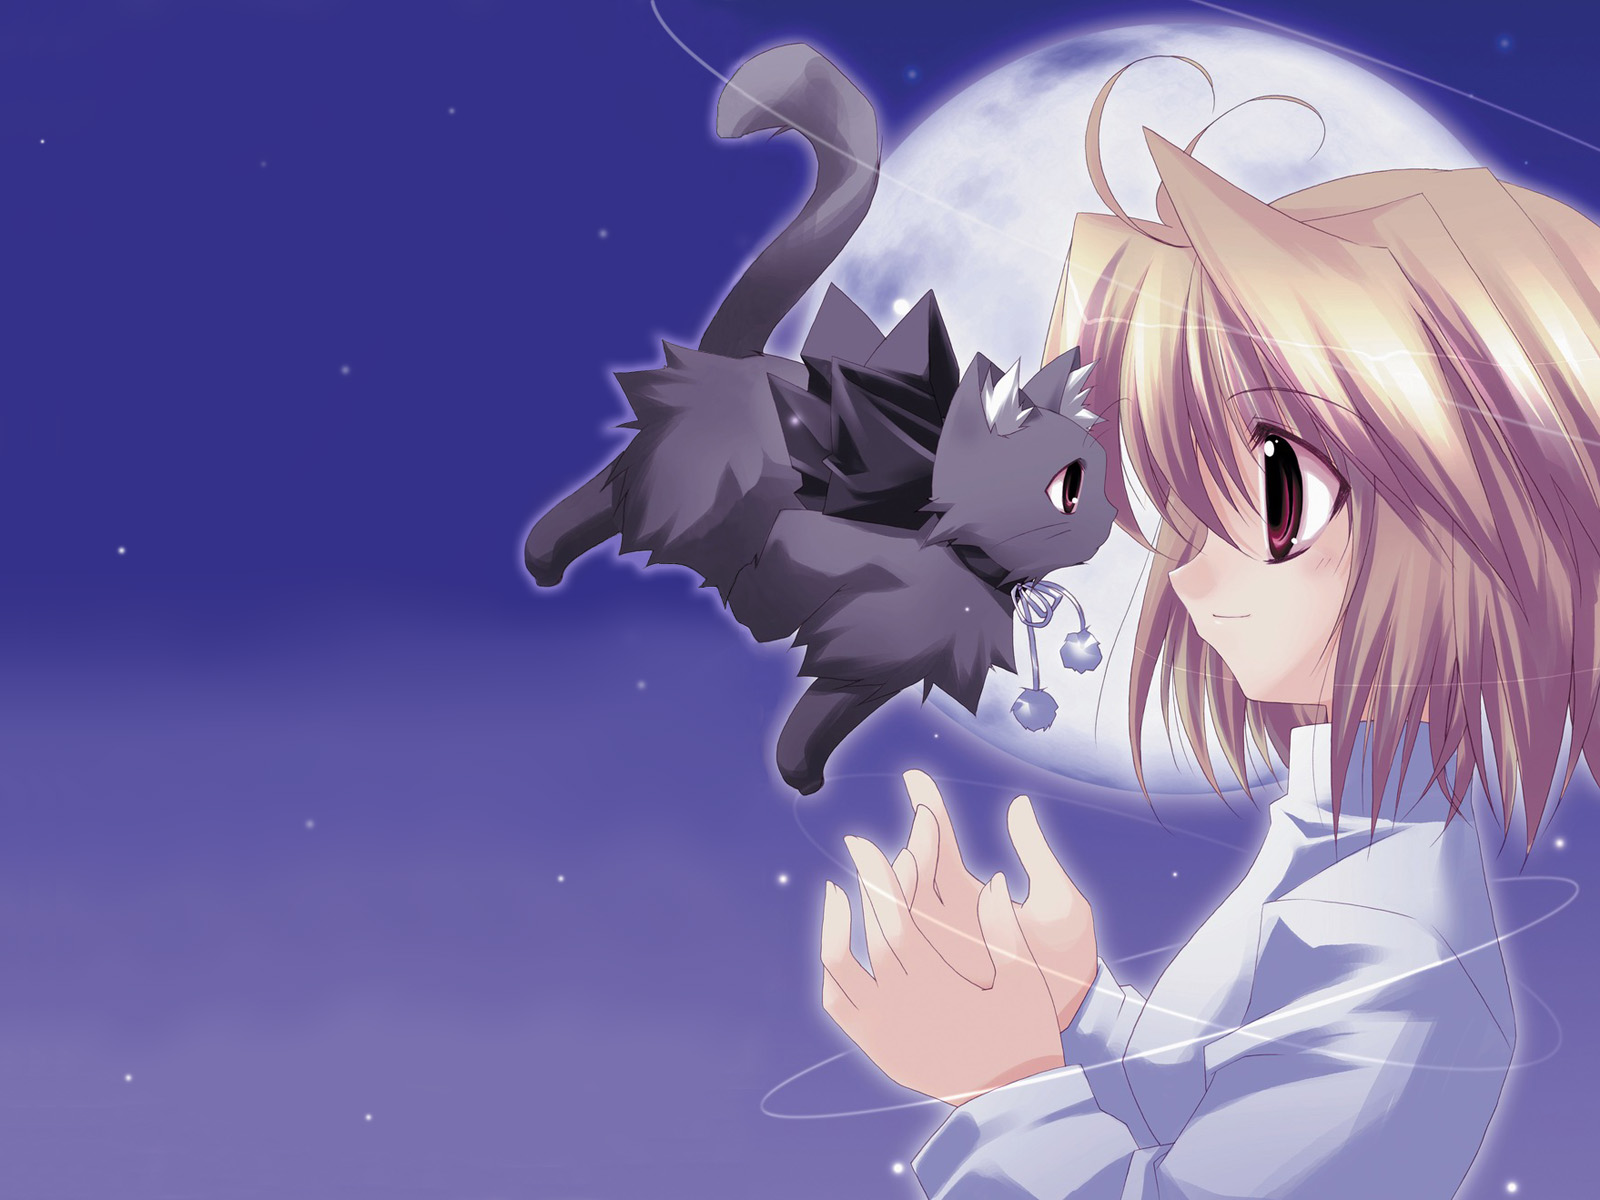 Anime Cat Girl Wallpaper Cute images 1600x1200